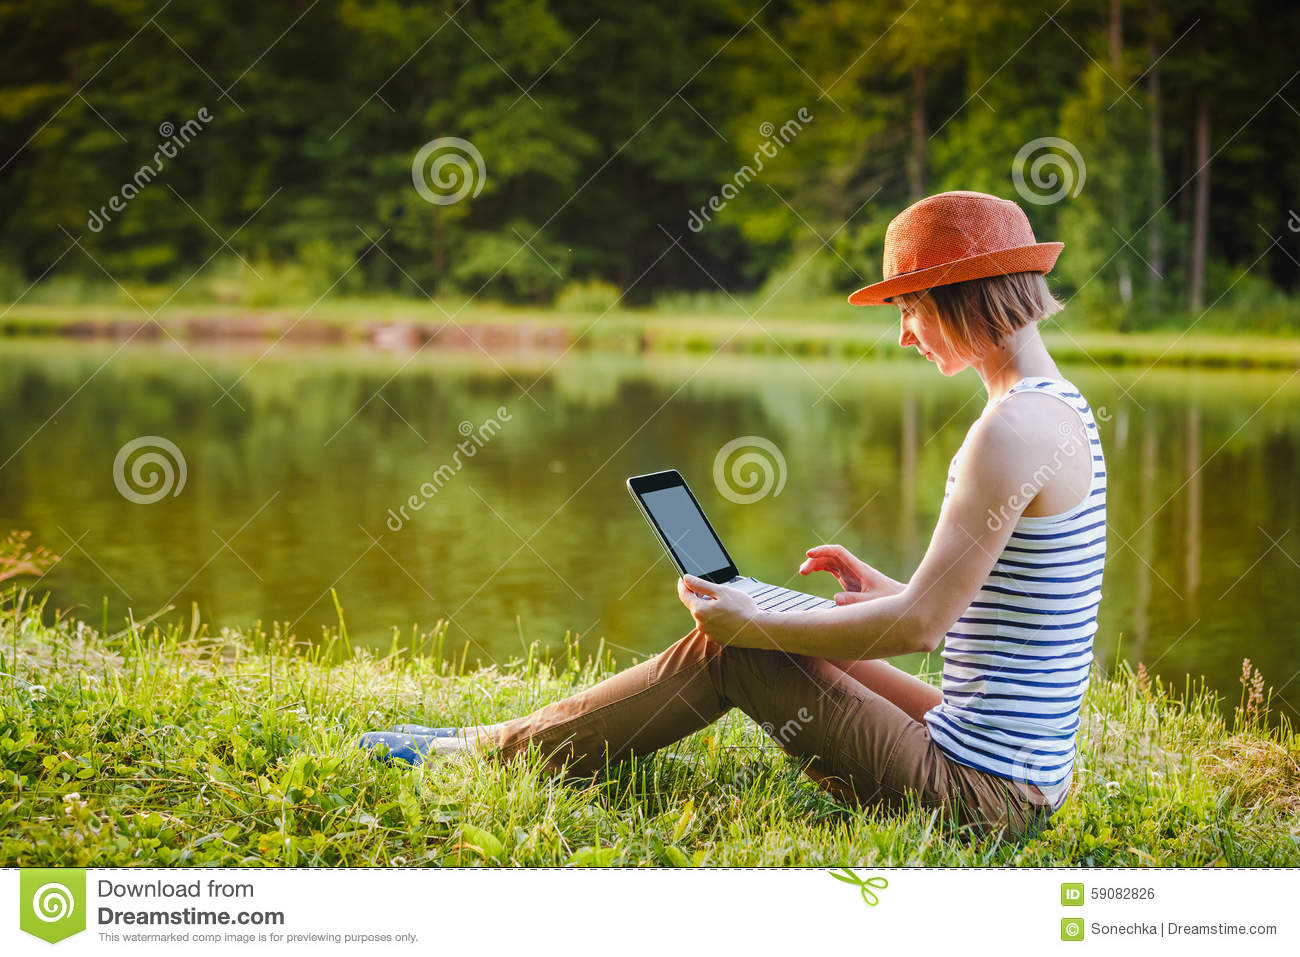 Young girl working/studing in the park